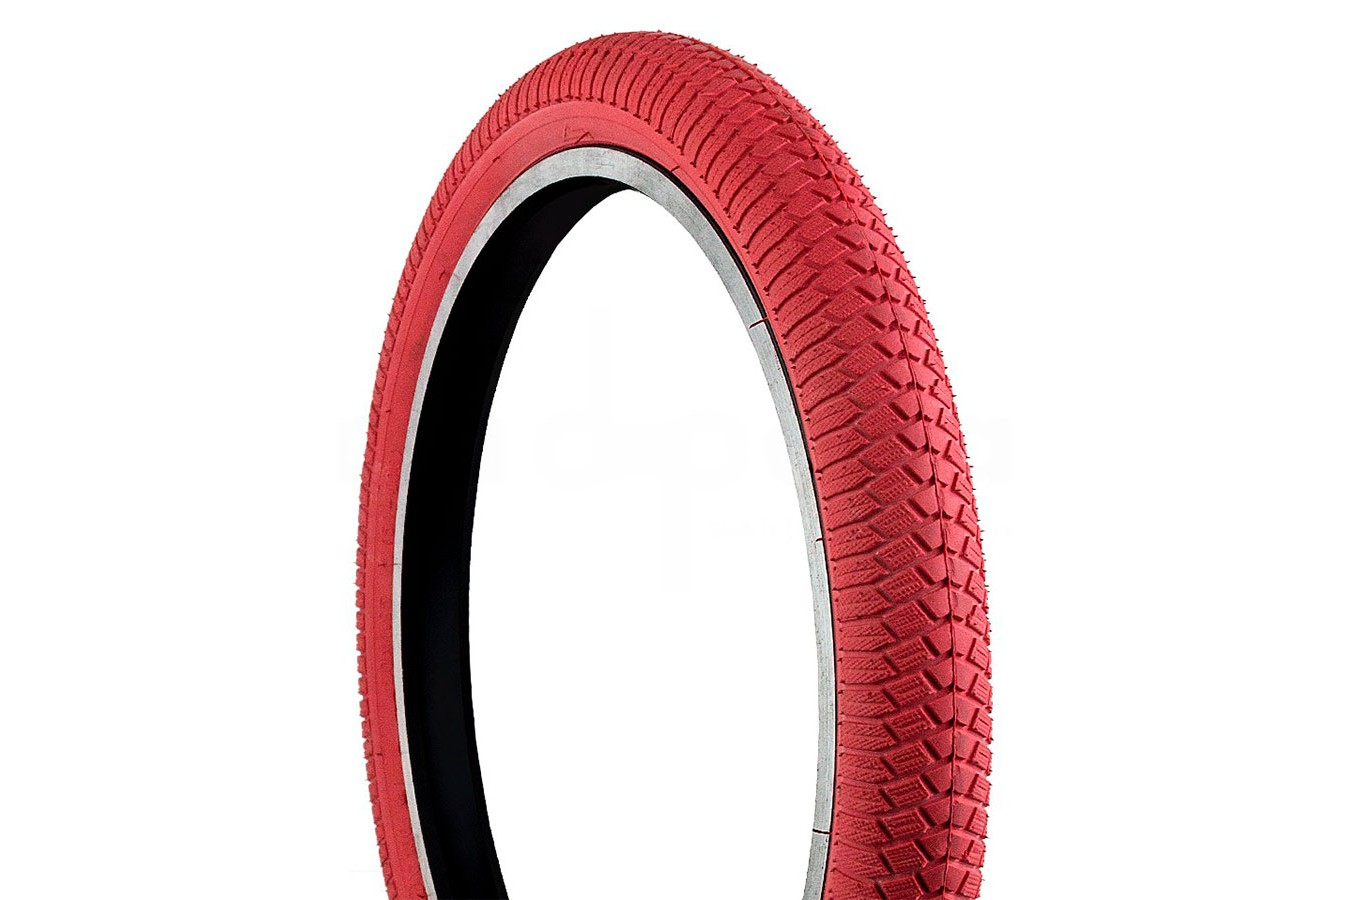 Pneu 20x1.95 (50-406) Freestyle - Vee Rubber